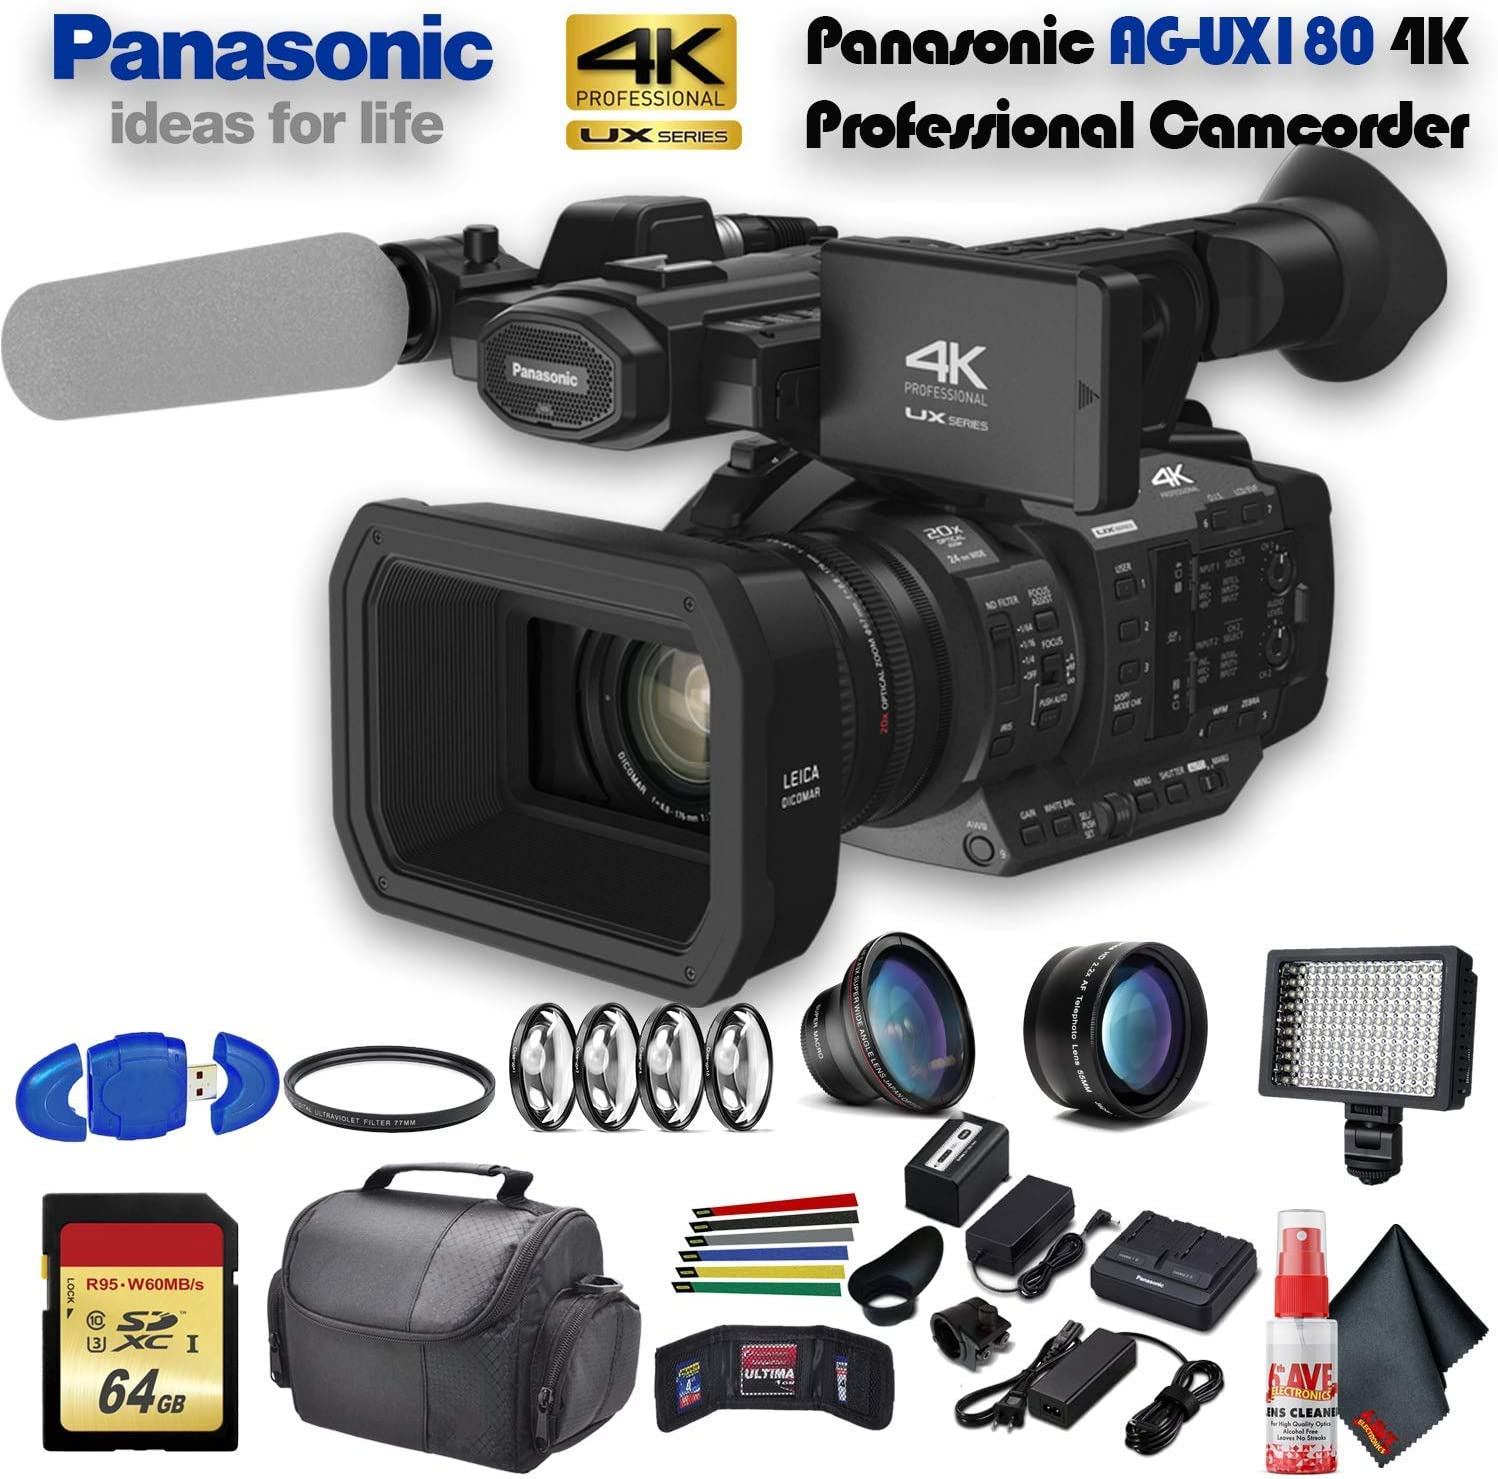 Amazon Com Panasonic Ag Ux180 4k Professional Camcorder Ag Ux180pj8 With Uv Filter Close Up Diopters Wide Angle Lens Tripod Padded Case Led Light 64gb Memory Card And More Advanced Bundle Electronics